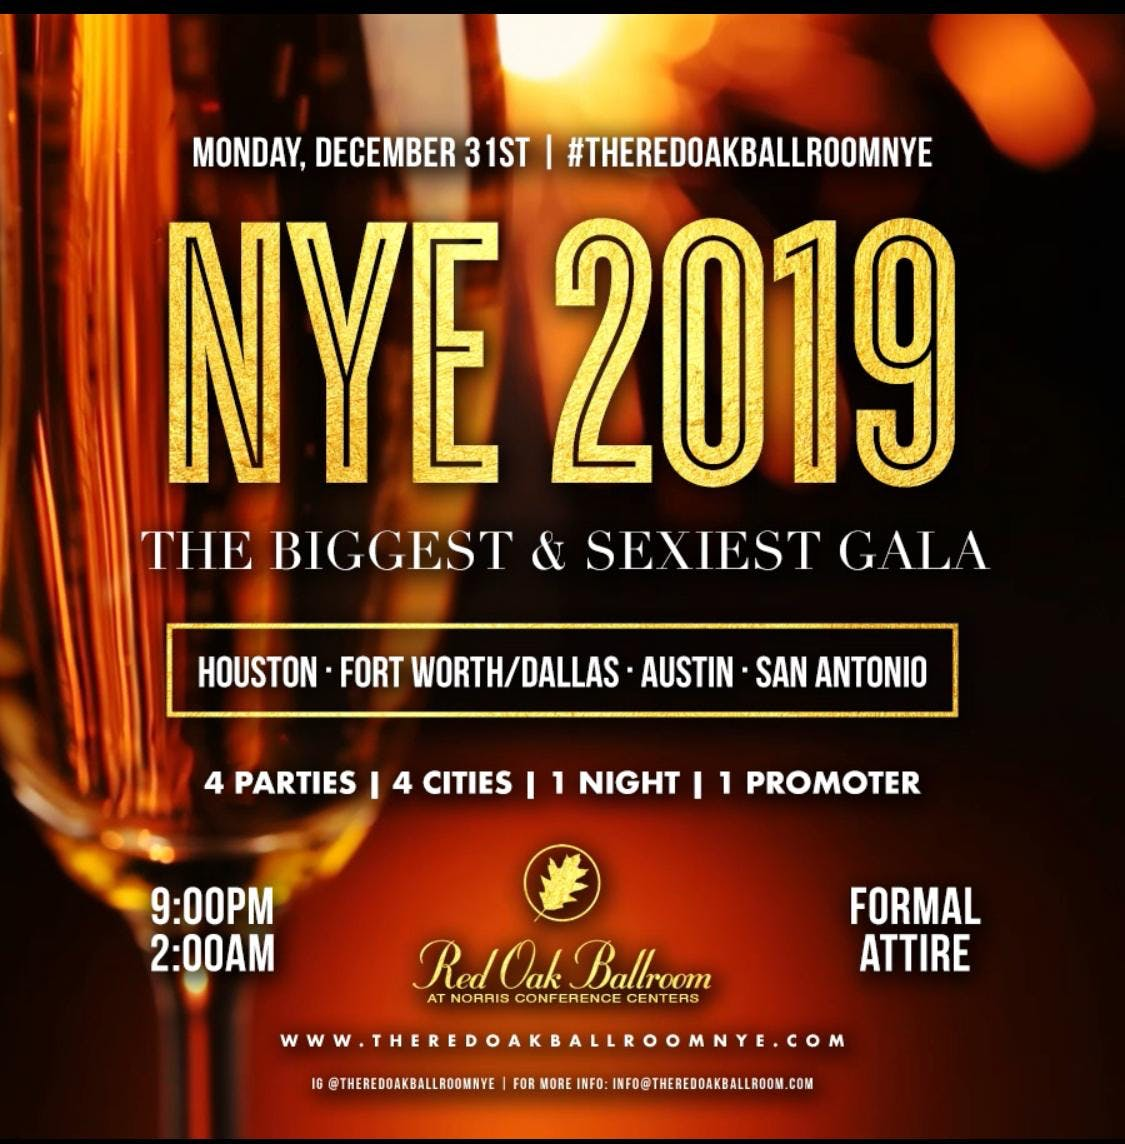 Red Oak Ballroom NYE 2019 New Year's Eve Celebration Fort Worth/Dallas, Fort Worth TX - Dec 31 ...